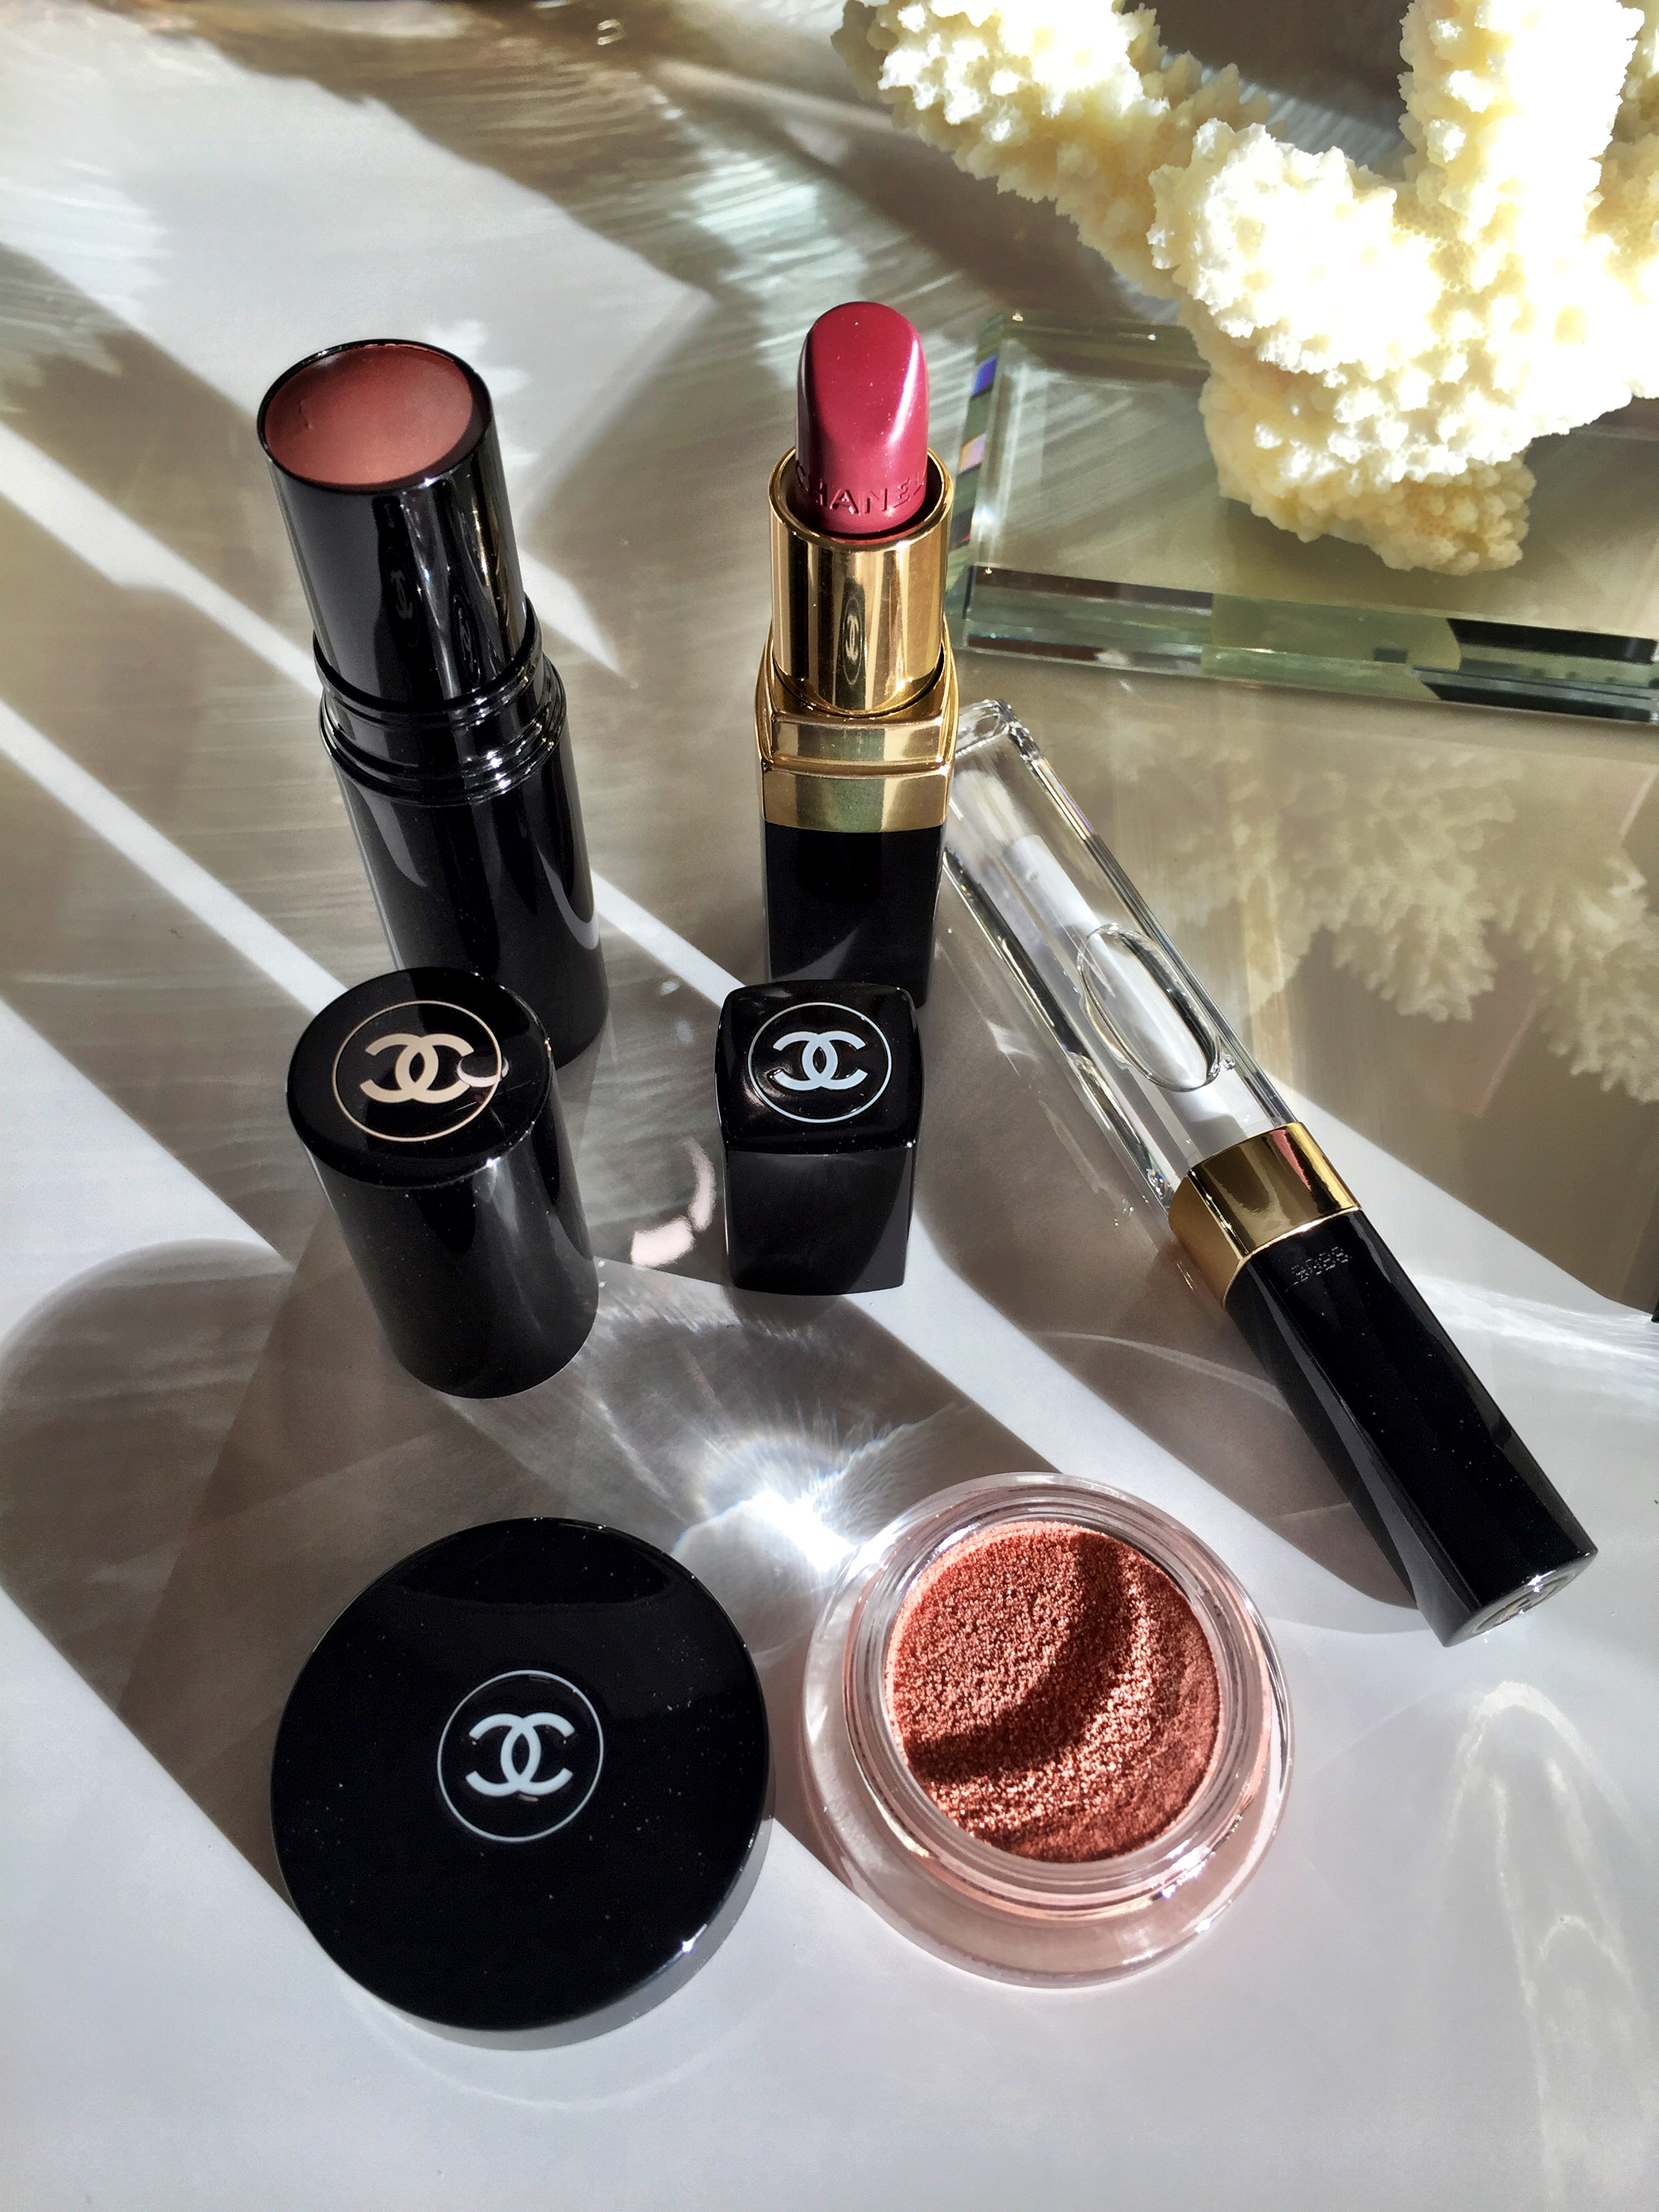 CHANEL Makeup for a quick Natural Look